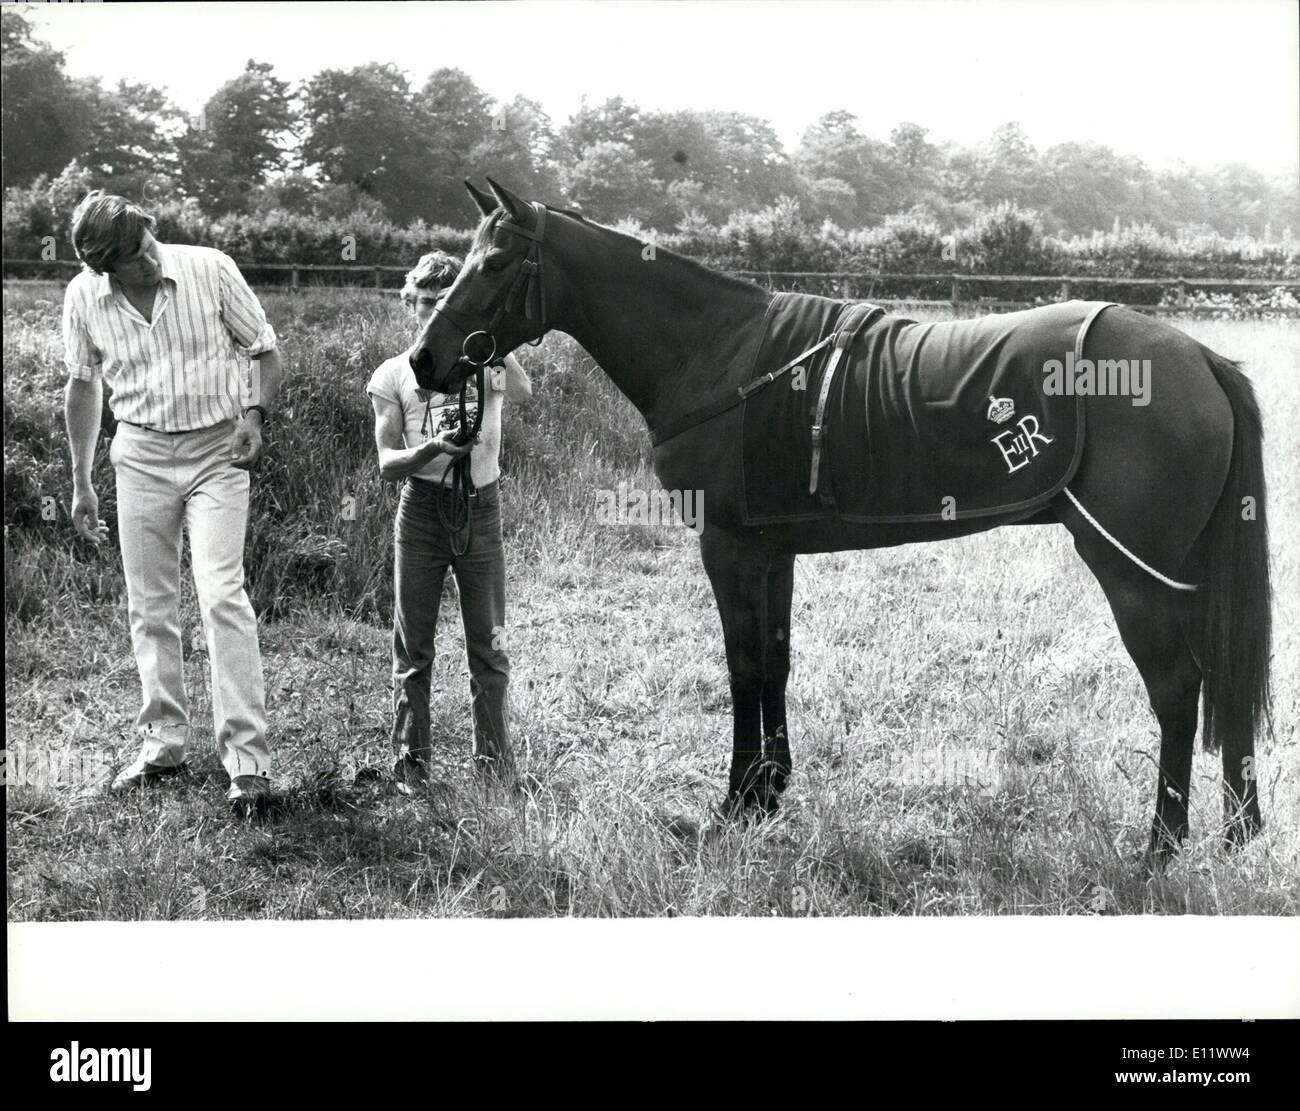 Jun. 06, 1980 - Queen's Horse 'Australia Fair' at Newmarket: Australia Fair, the two-year-old filly racehorse presented to the the Queen by the Australian People as a belated Silver Jubilee gift, getting the feel of English Soil yesterday after her arrival at the Newmarket stables of trainer William Hastings-Bass. Photo Shows Australia Fair with trainer William Hastings-Bass being held by stable lad Tam McKay. - Stock Image